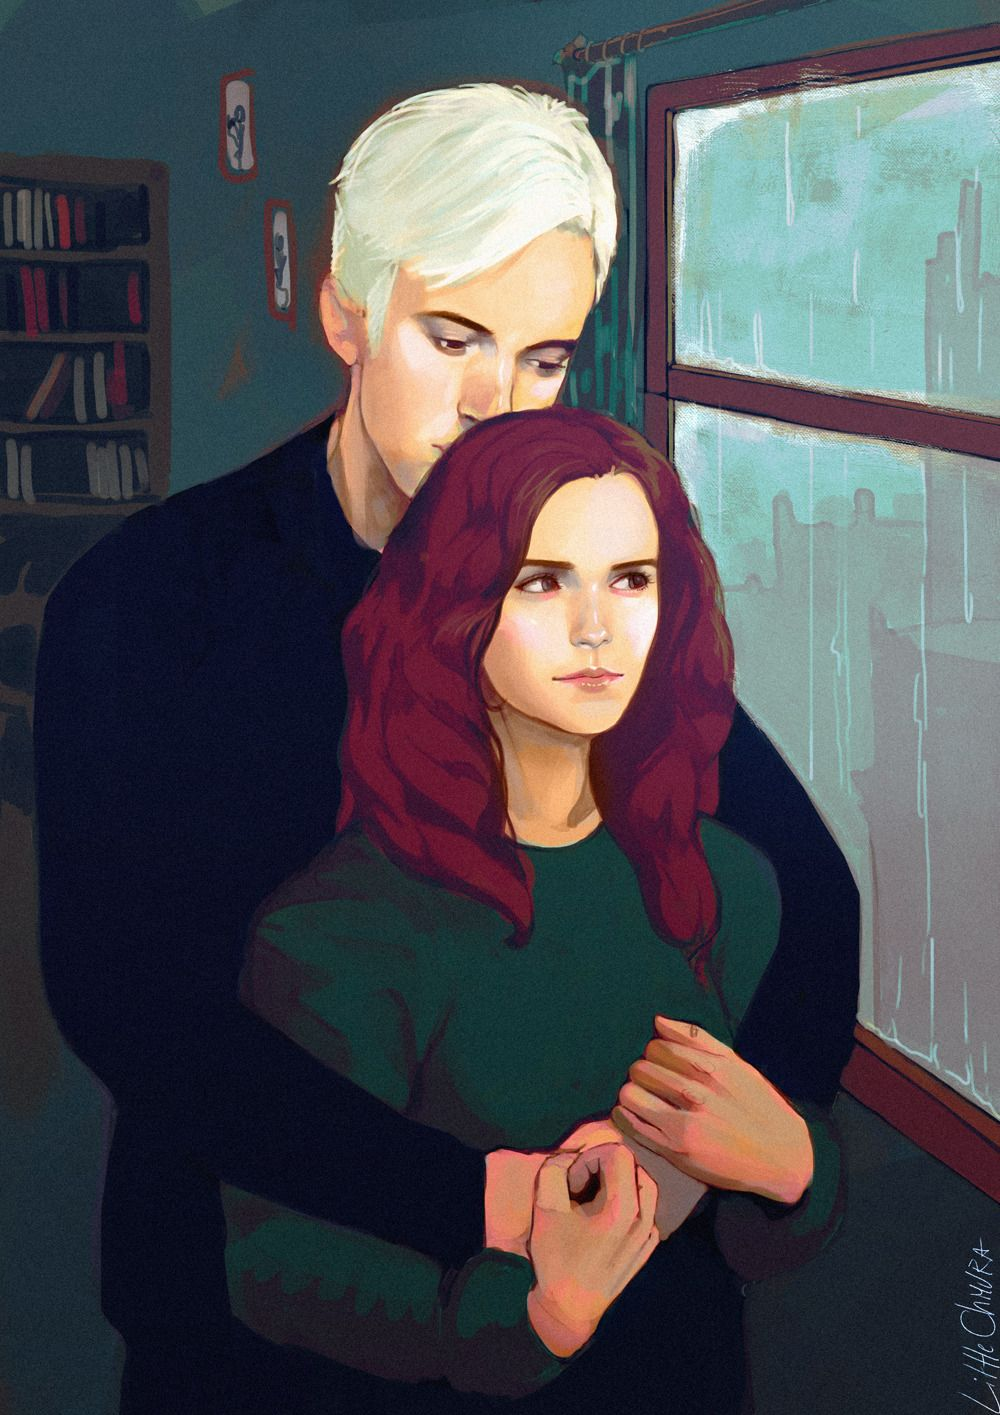 658 Best Hermione and Draco images in 2020 | Draco, Hermione ...